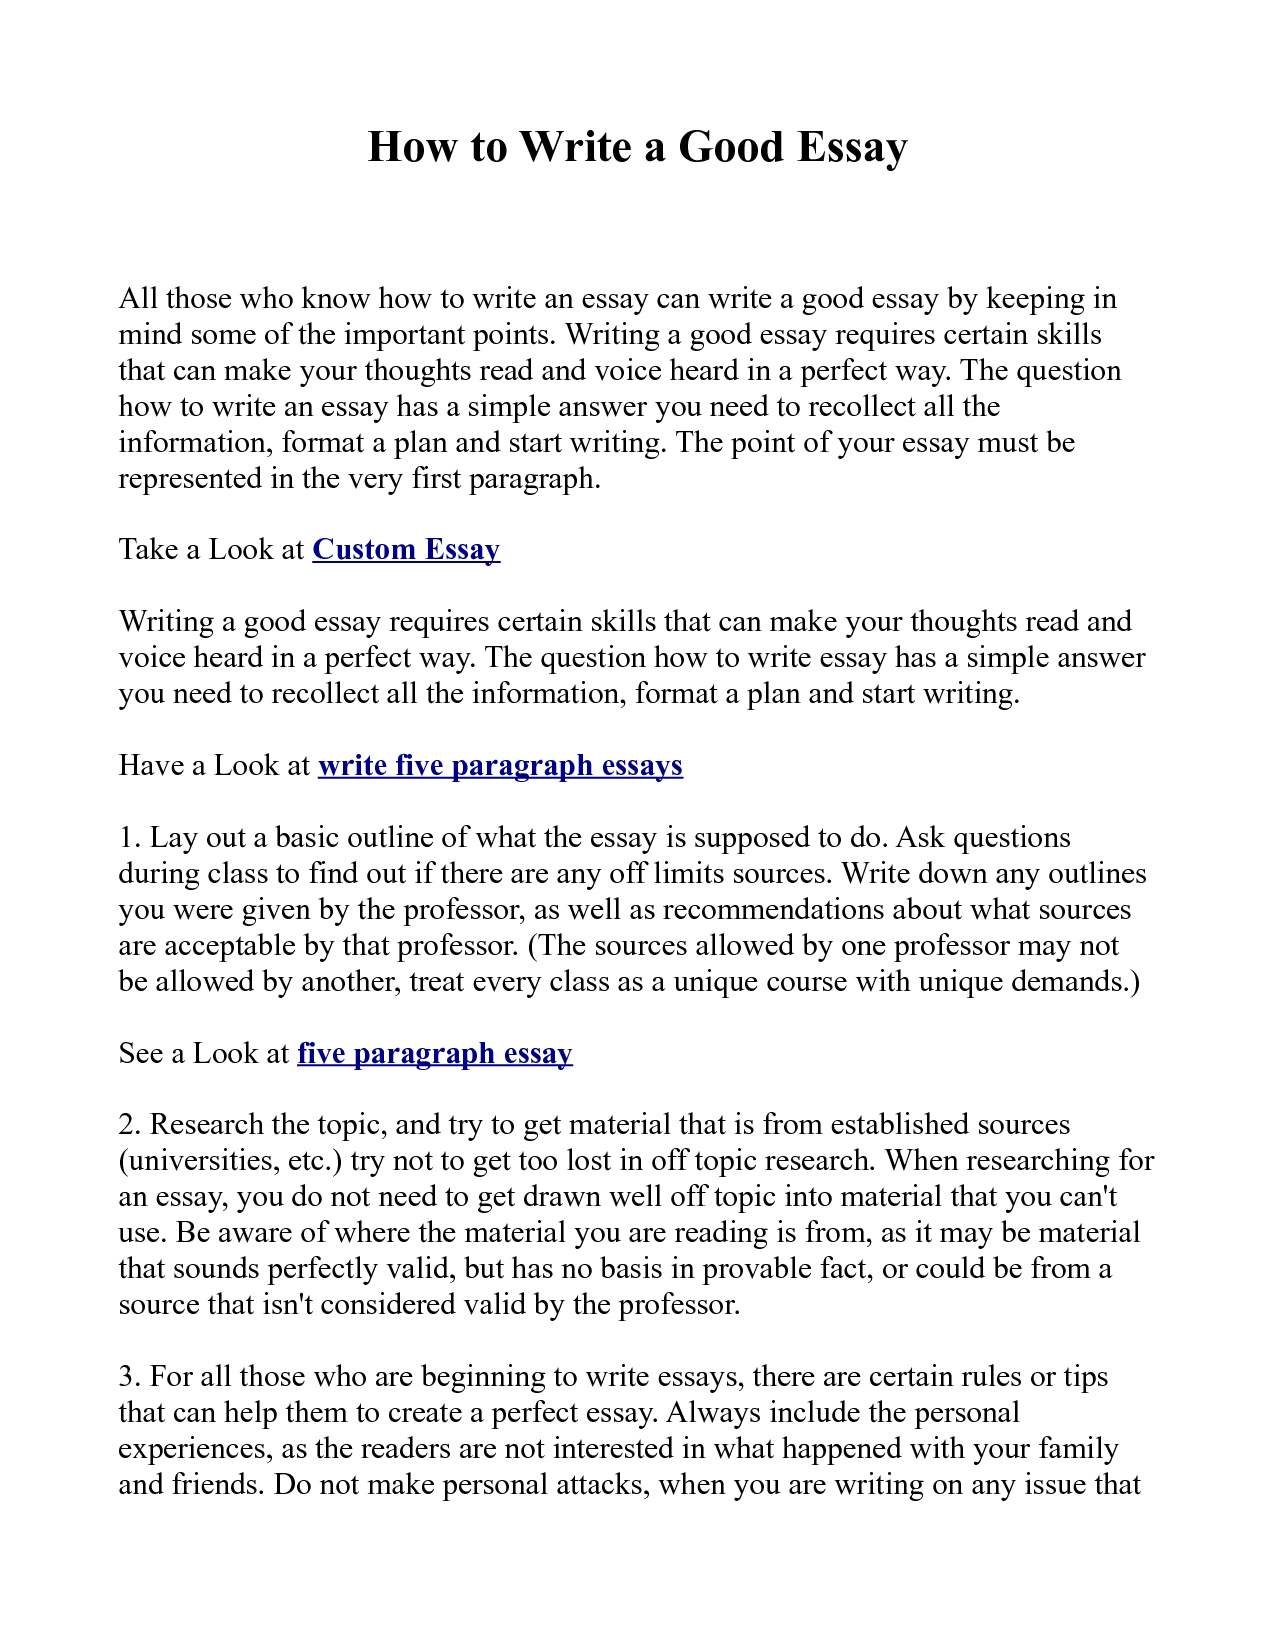 008 Best Essay Topics Ex1id5s6cl Surprising Research Paper For College Student High School Argumentative Full